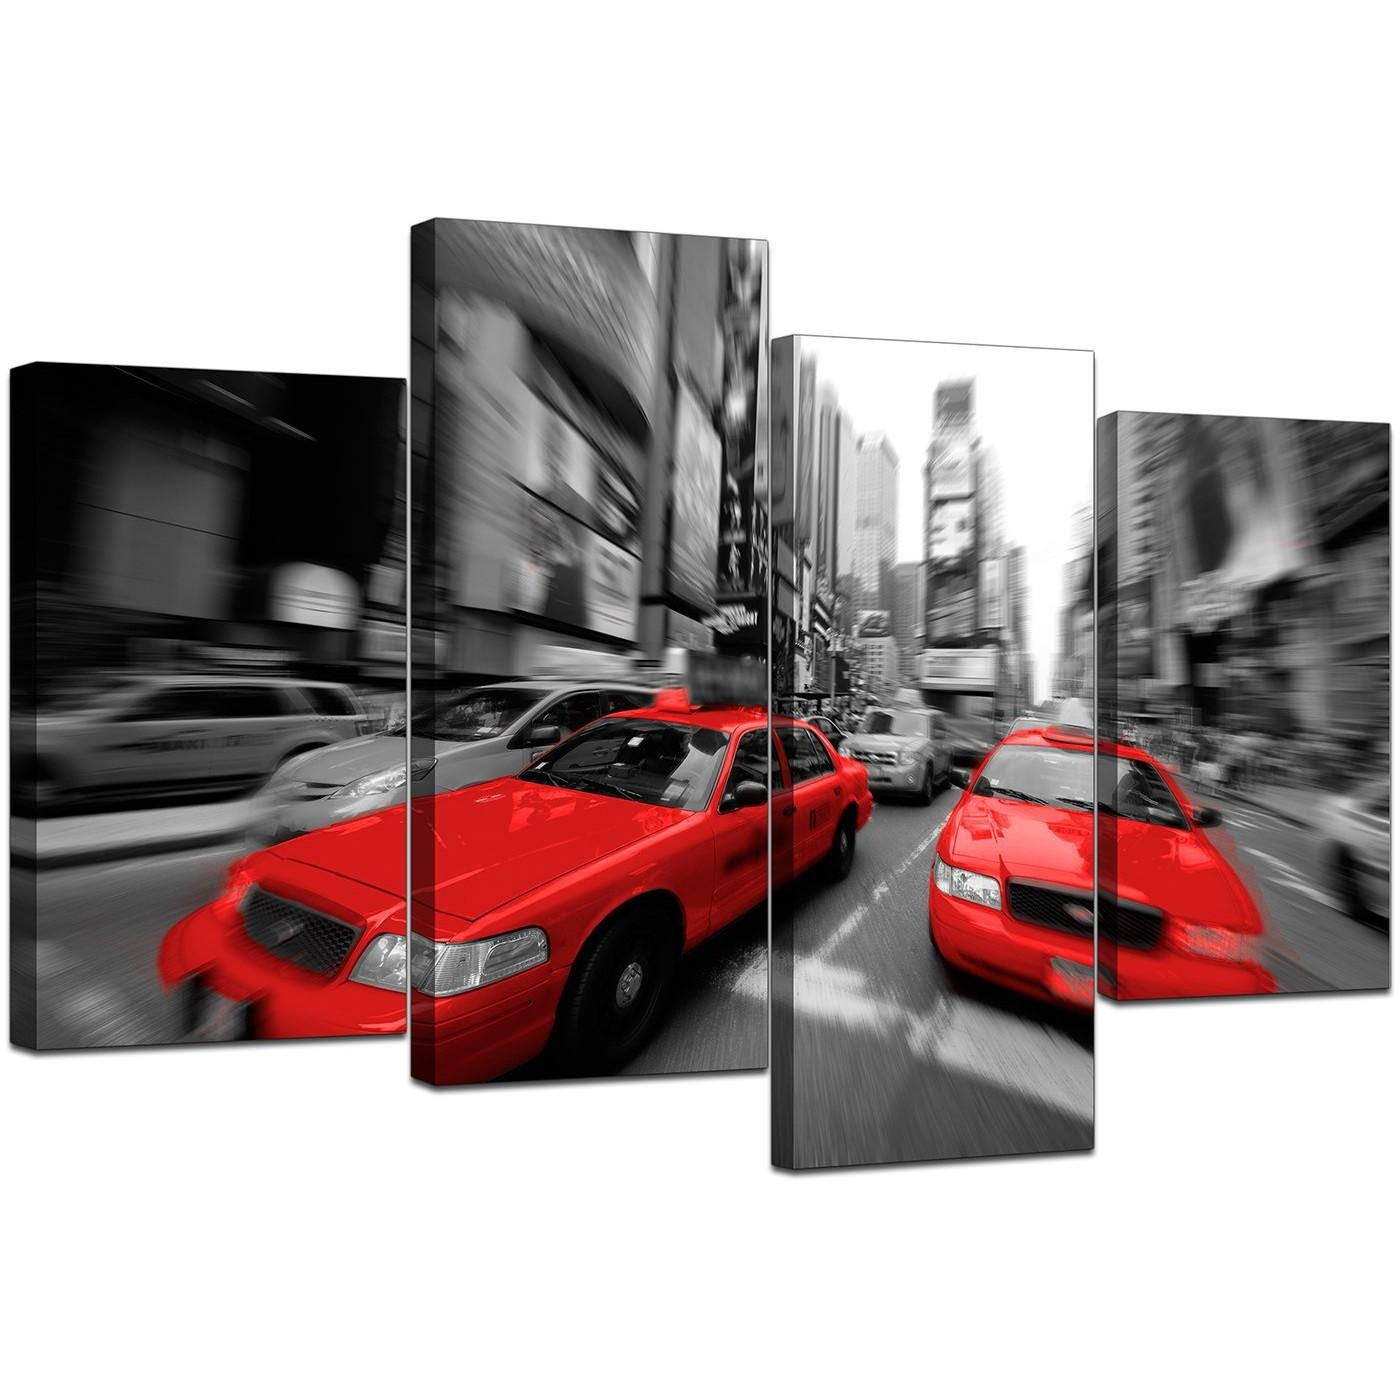 New York Canvas Prints In Black White & Red – For Living Room With Regard To Black And White Wall Art With Red (Image 14 of 20)